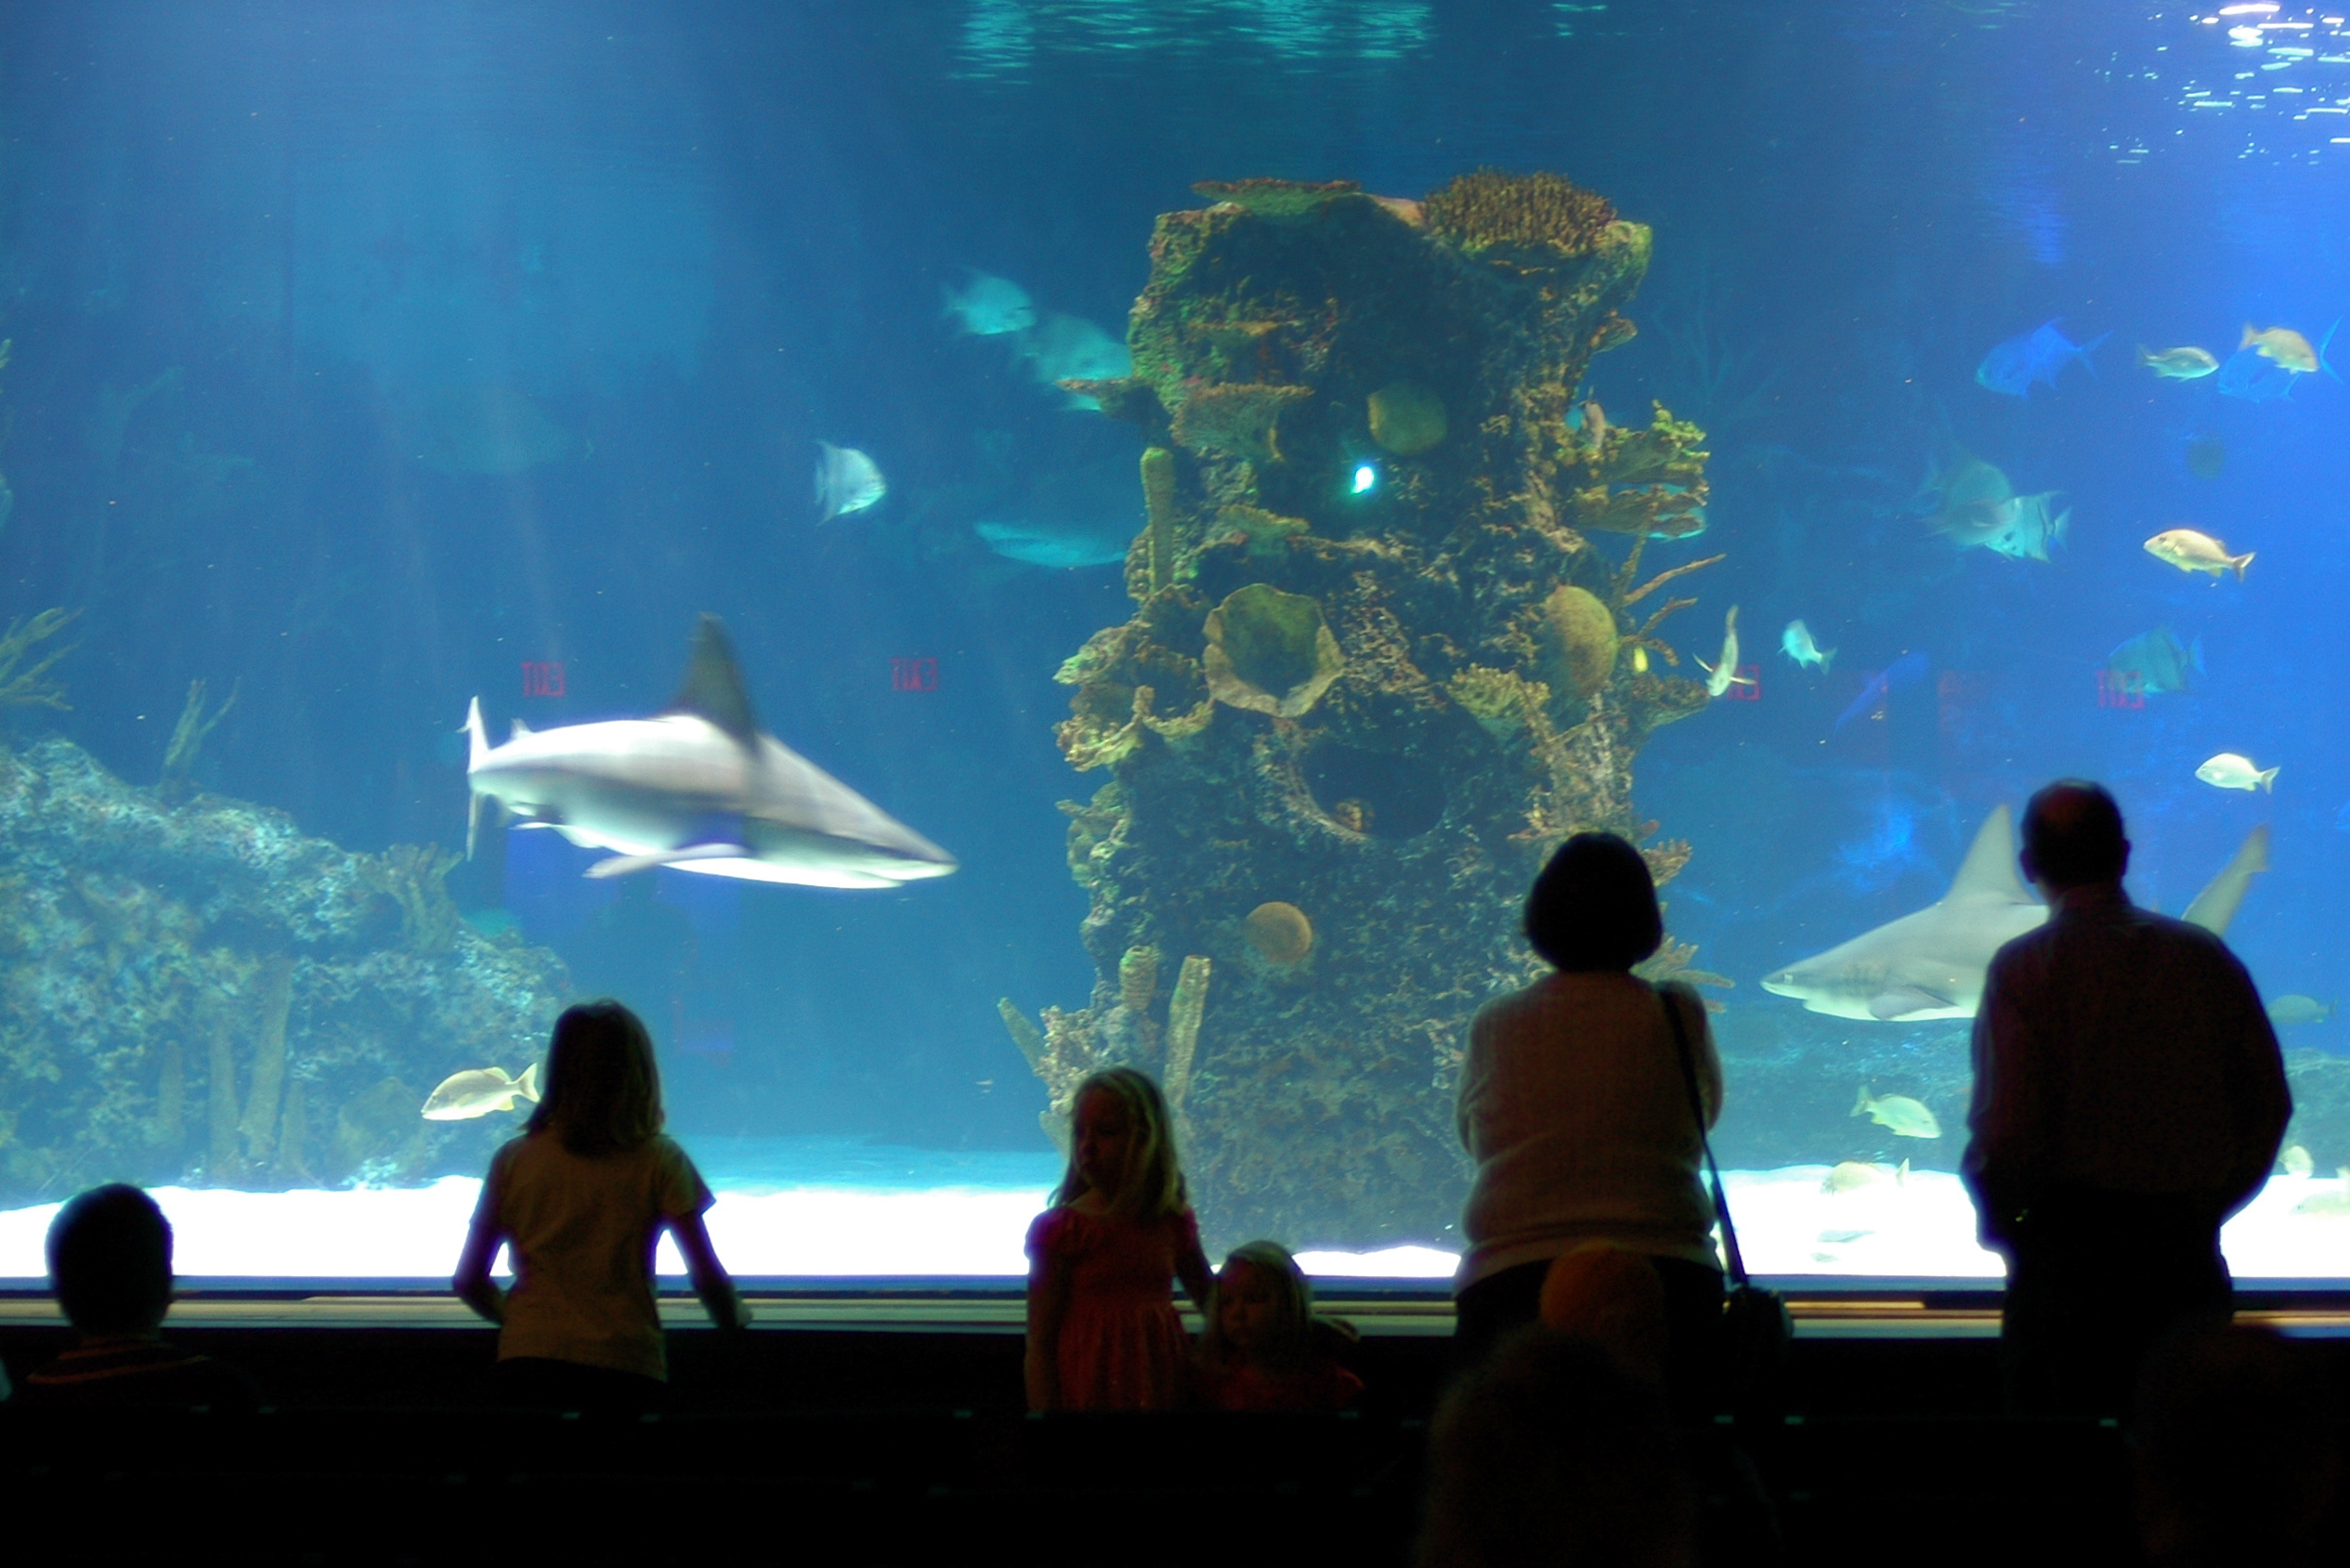 File:Sharktank at Newport Aquarium.jpg - Wikimedia Commons